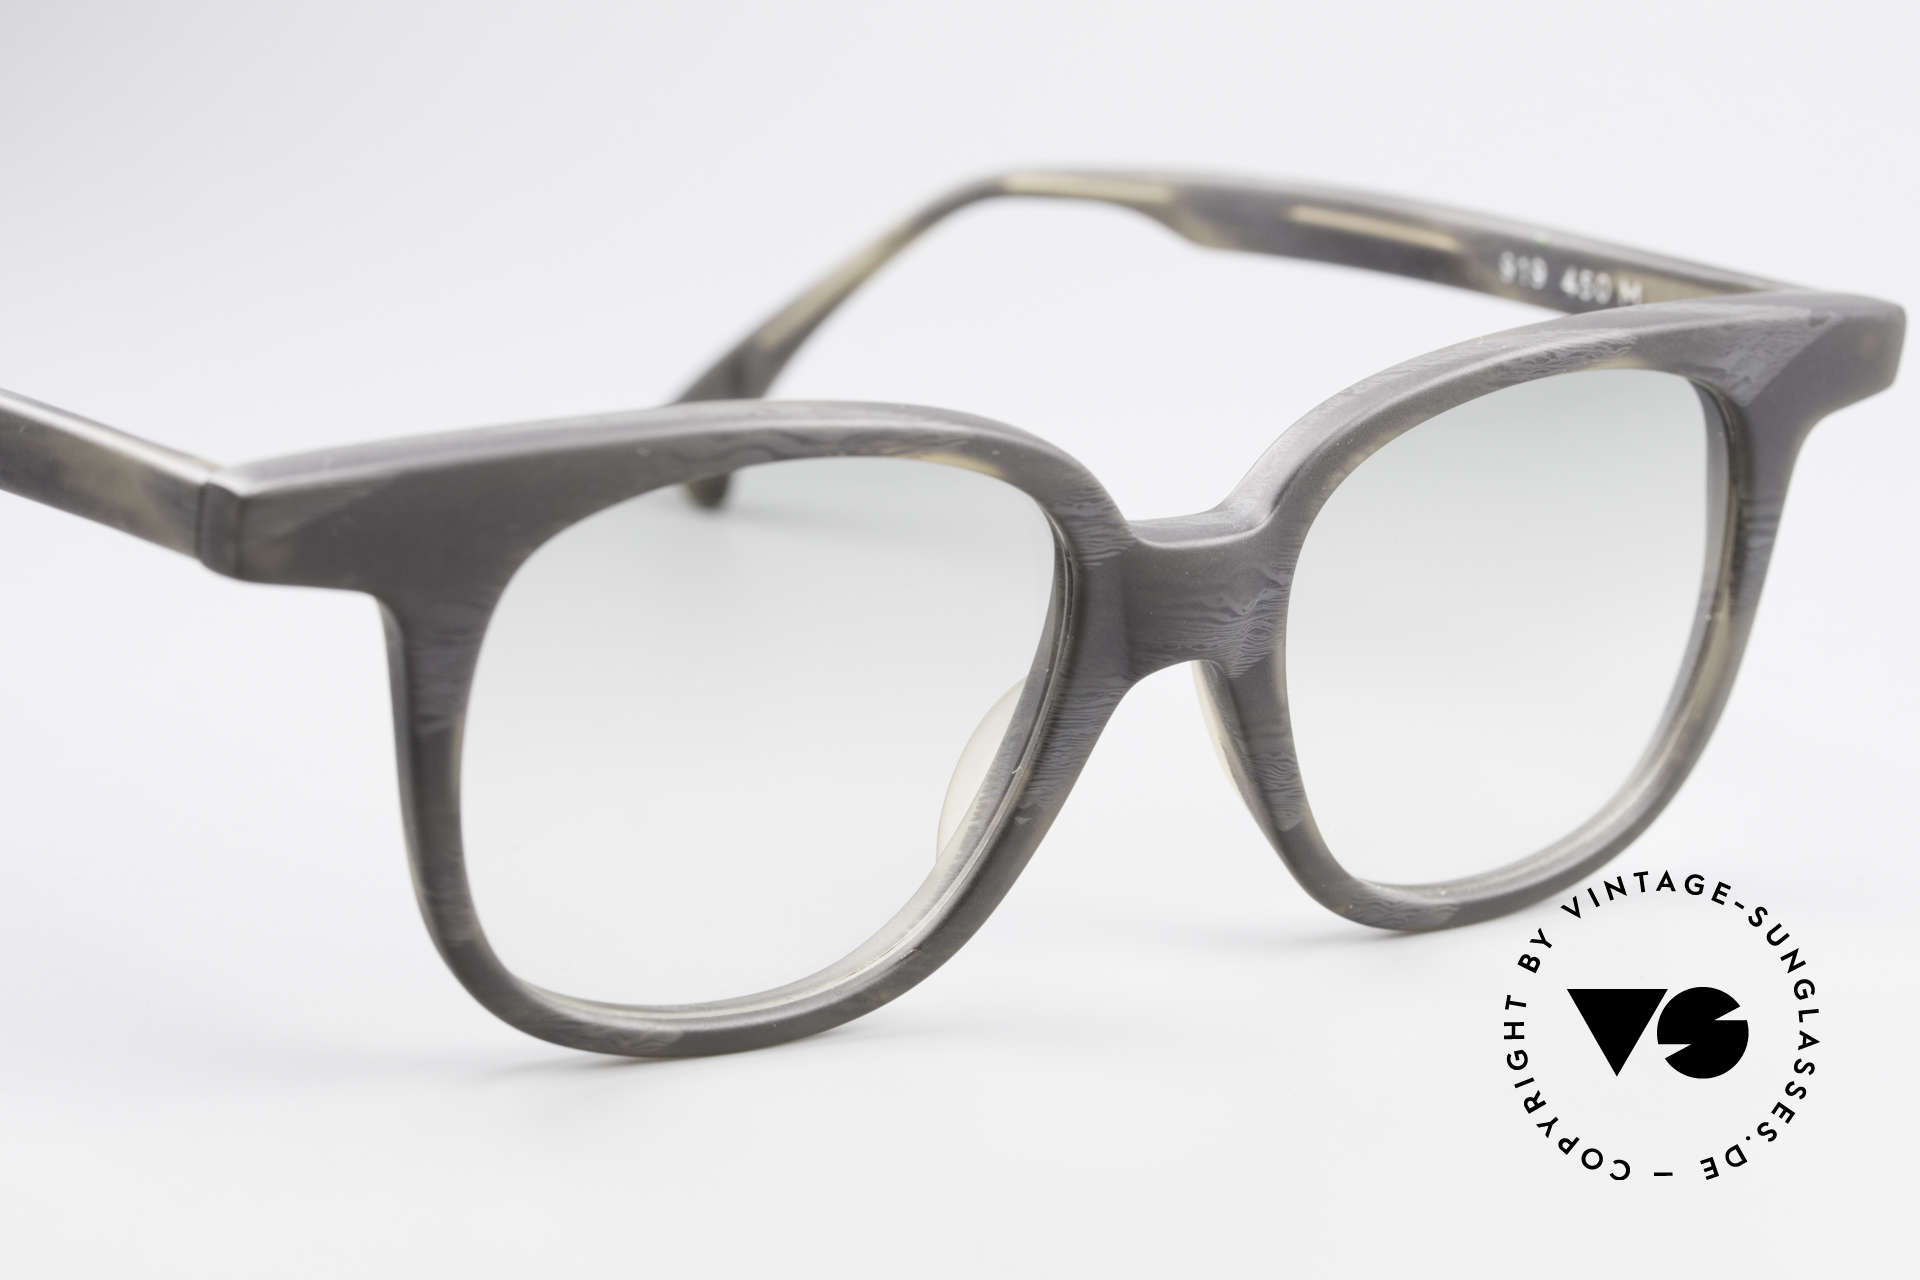 Alain Mikli 919 / 450 Square Panto Sunglasses, unworn, one of a kind (like all our vintage MIKLI), Made for Men and Women